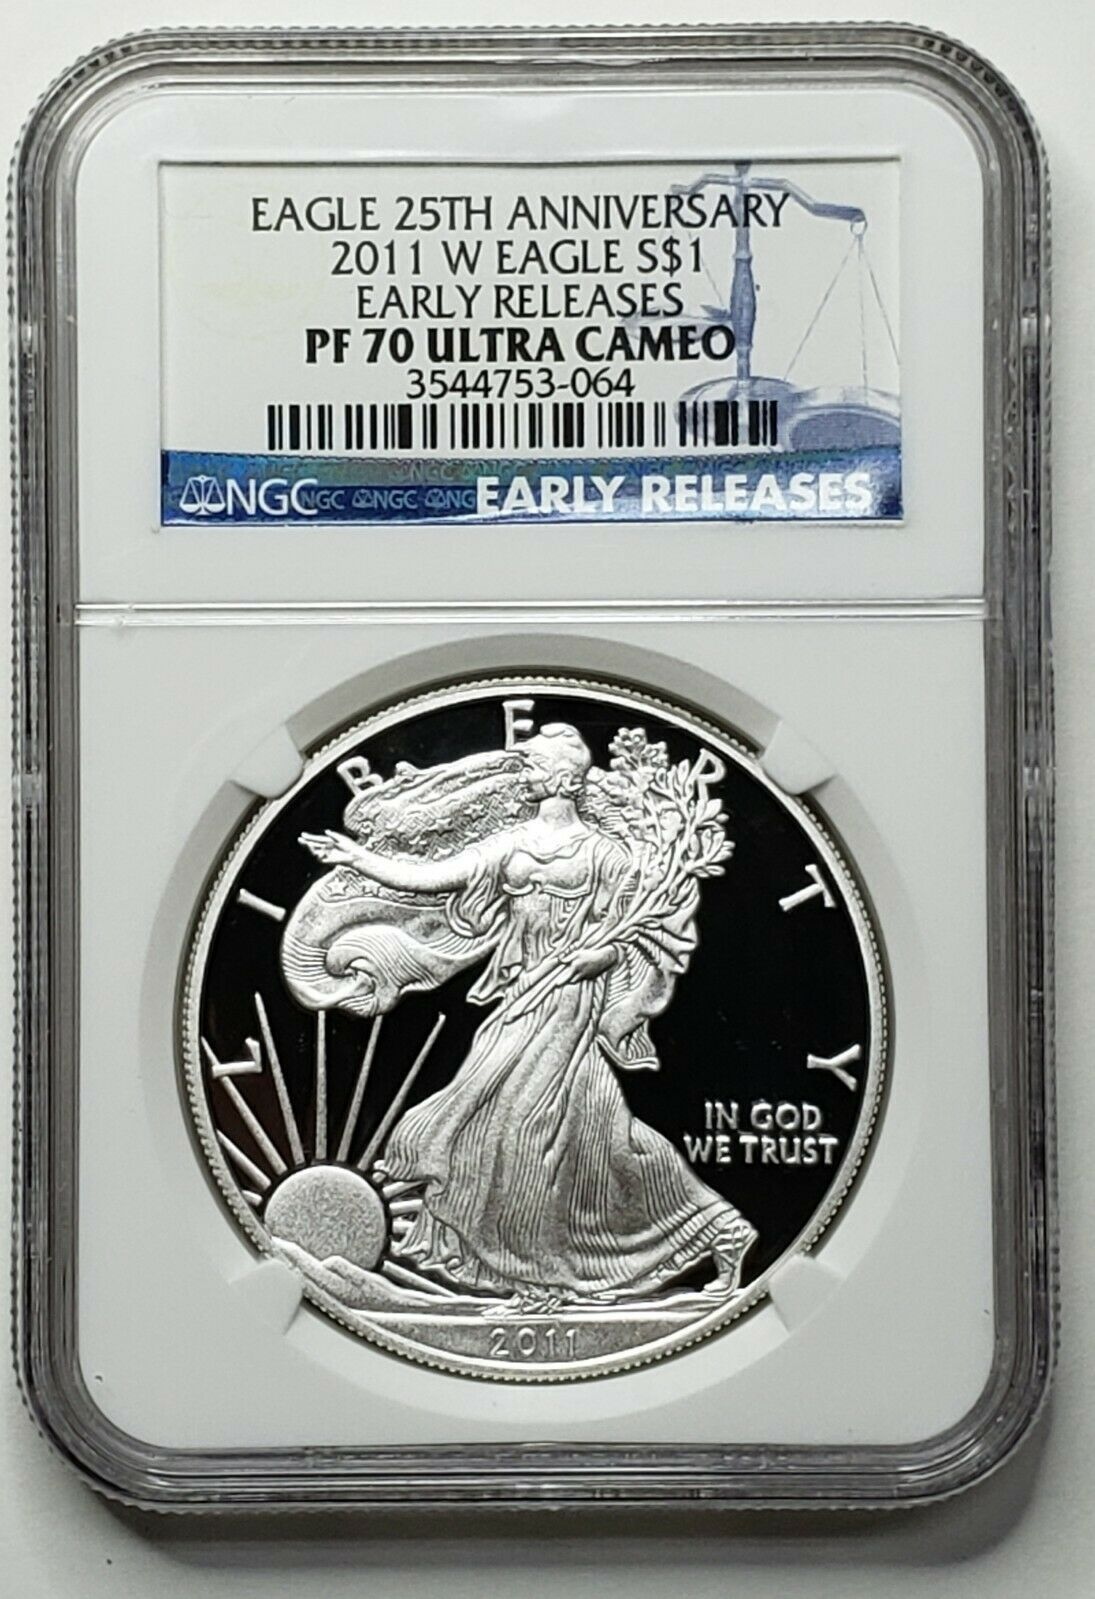 2011W Silver Eagle 25th Anniversary Set Proof NGC PF70 Lot  519-49